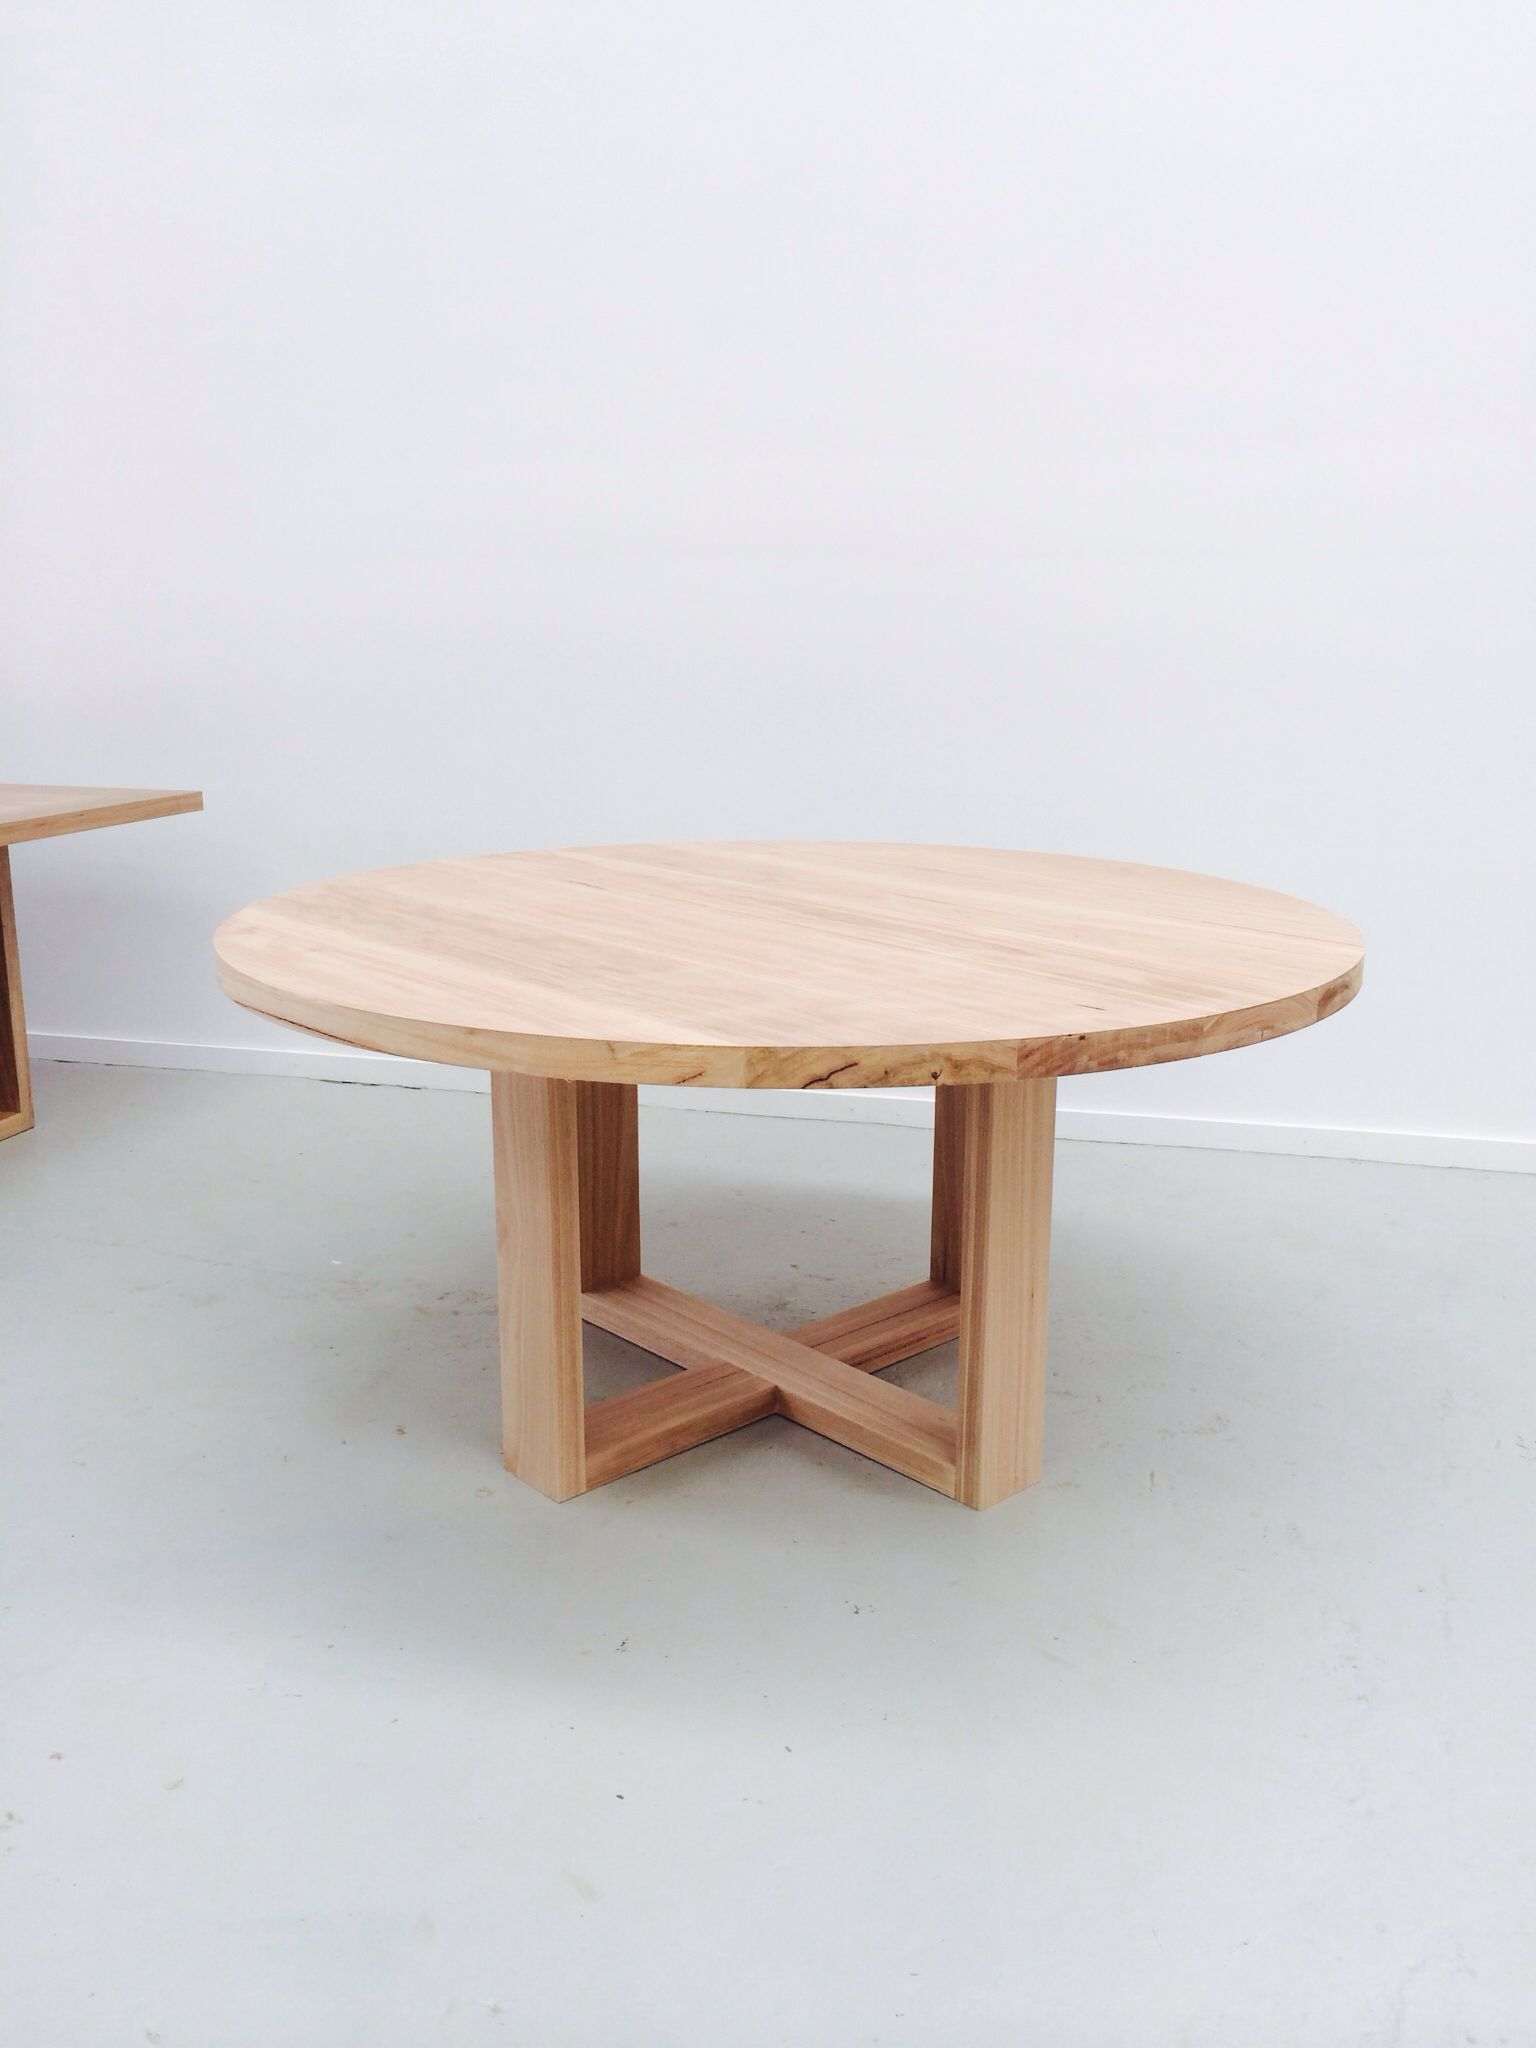 The Orbit round timber dining table from 1000mm up to a massive